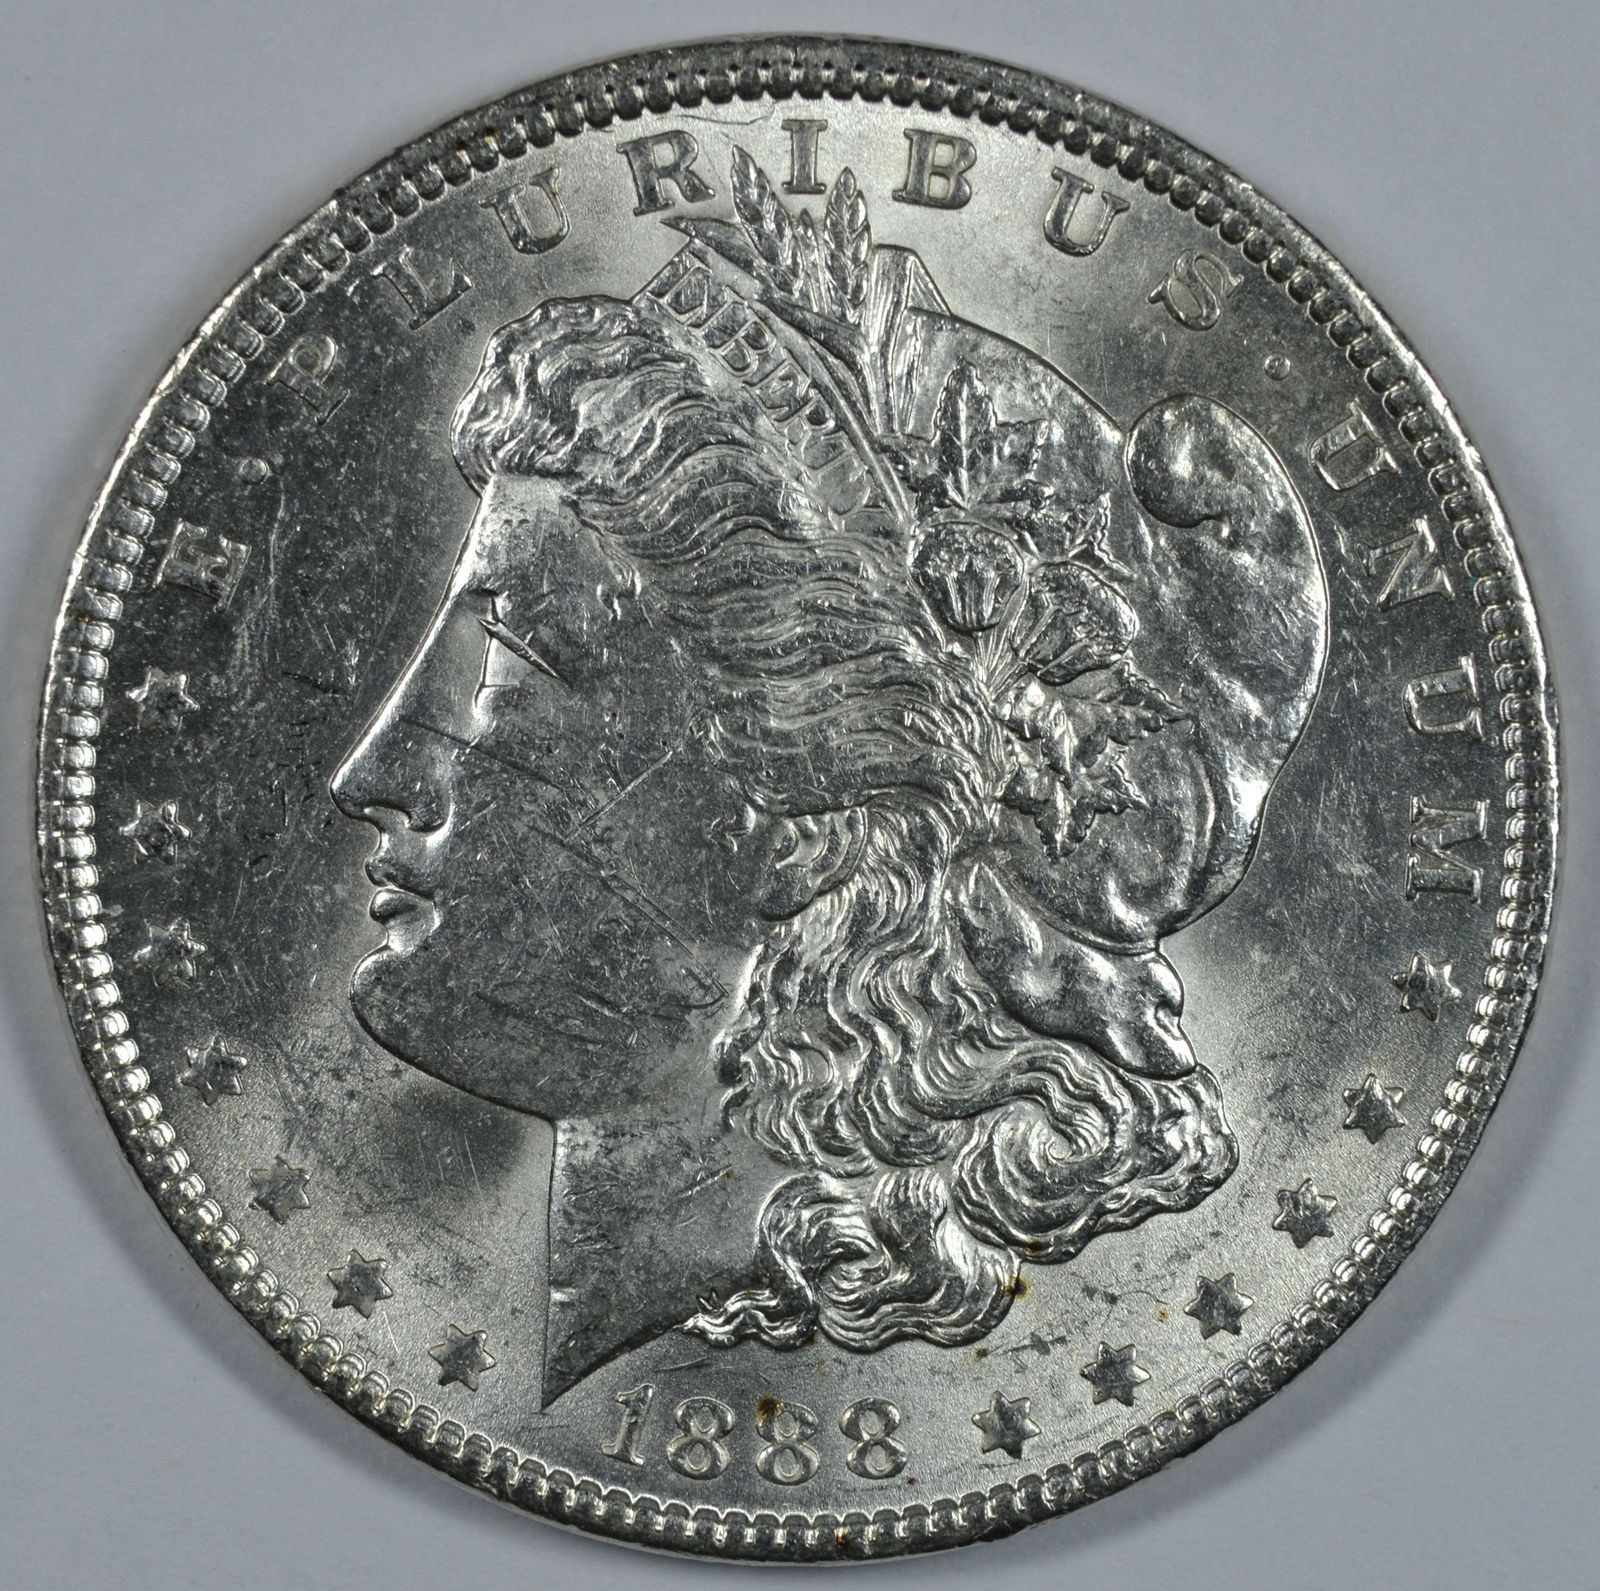 Primary image for 1888 P Morgan circulated silver dollar XF details